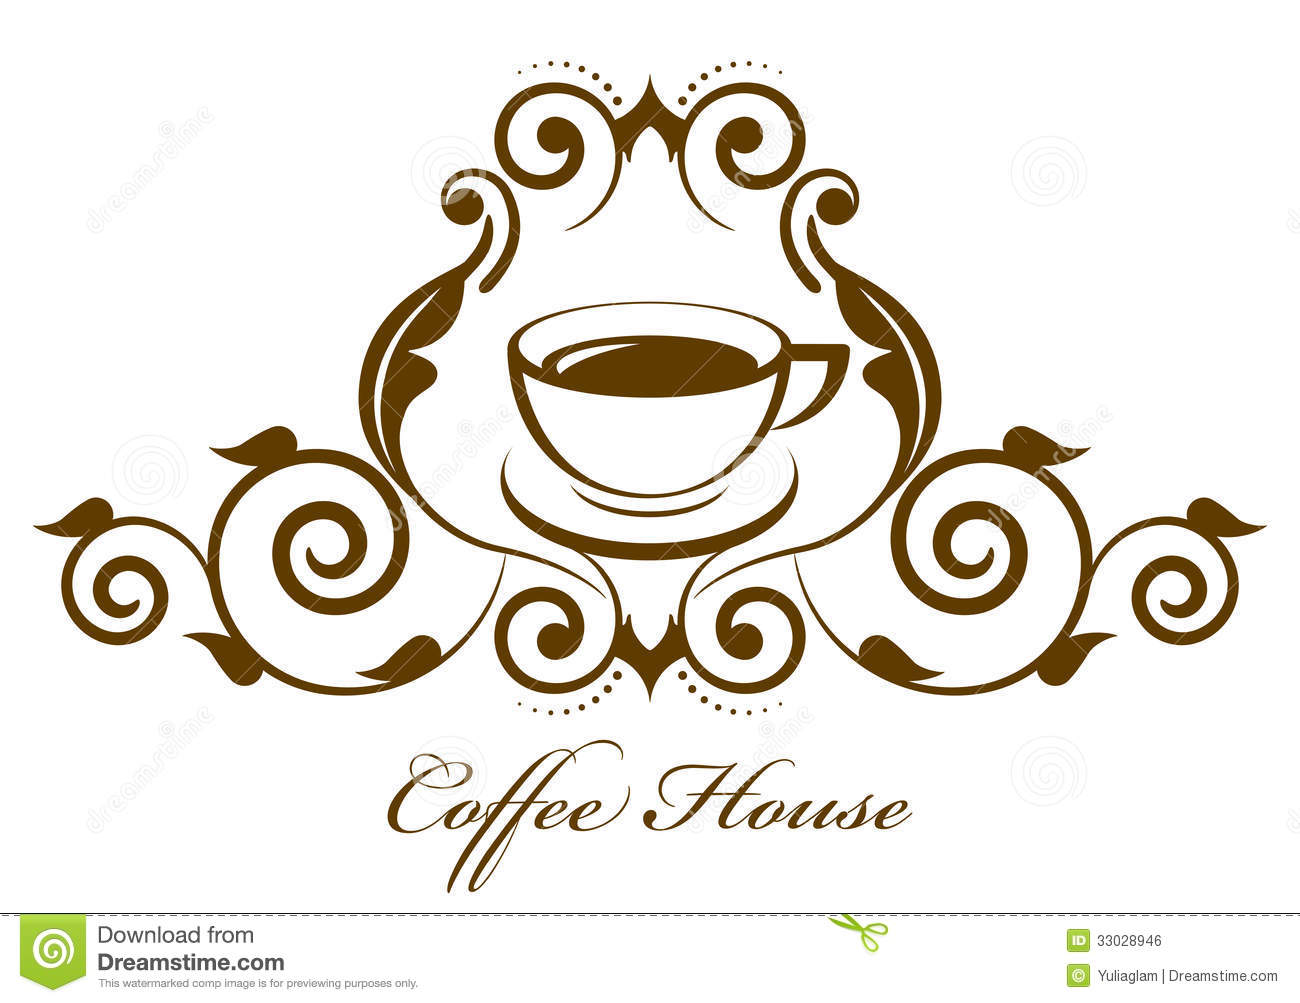 Coffee icon stock vector. Illustration of cafe, logo ...